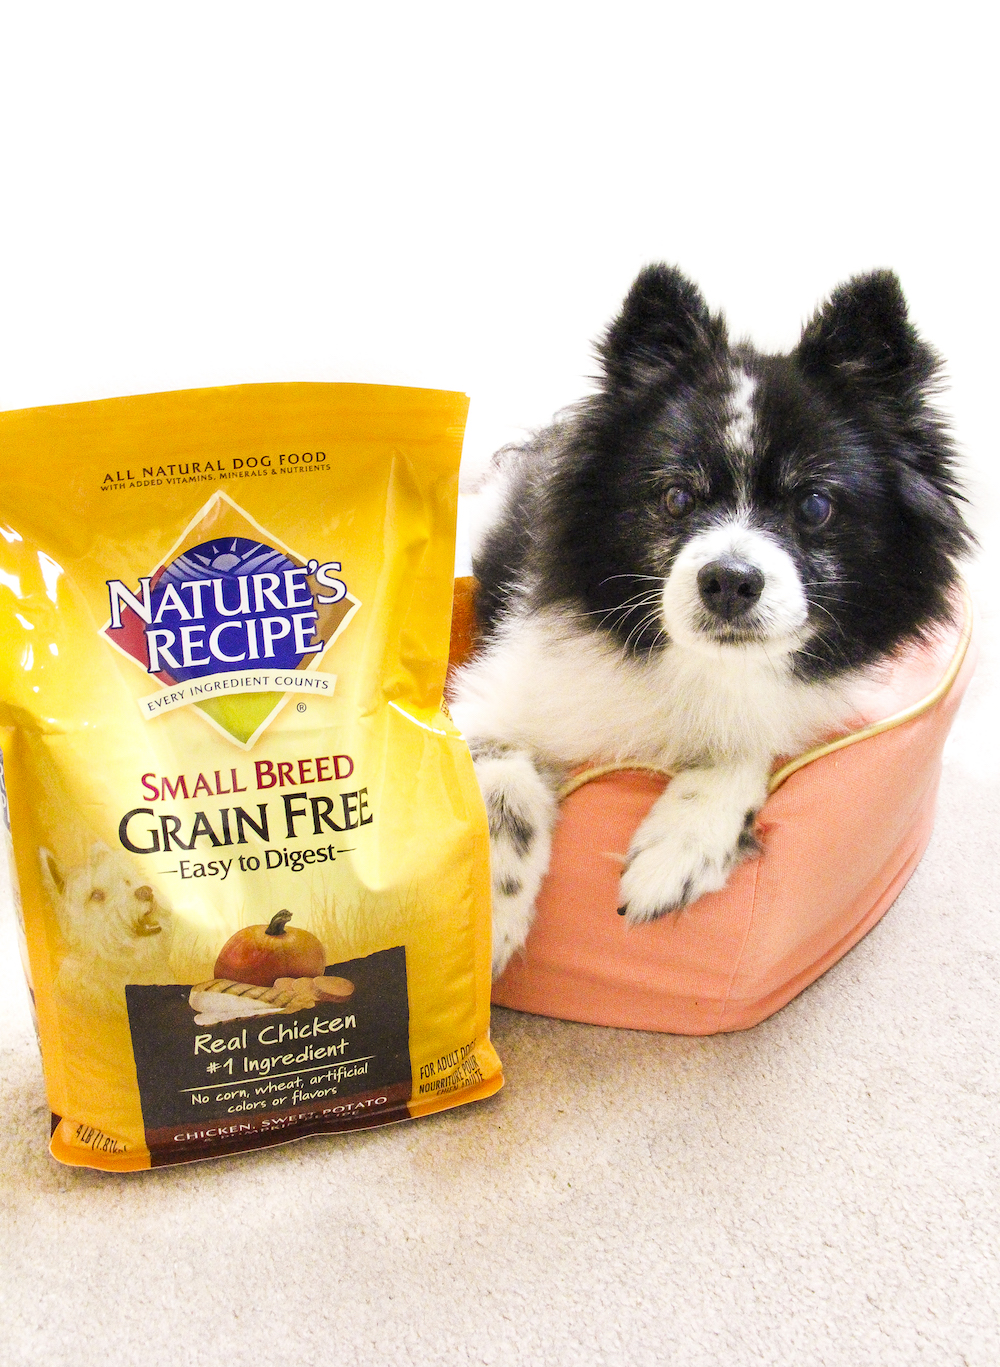 Pink Loves His Nature's Recipe Dog Food